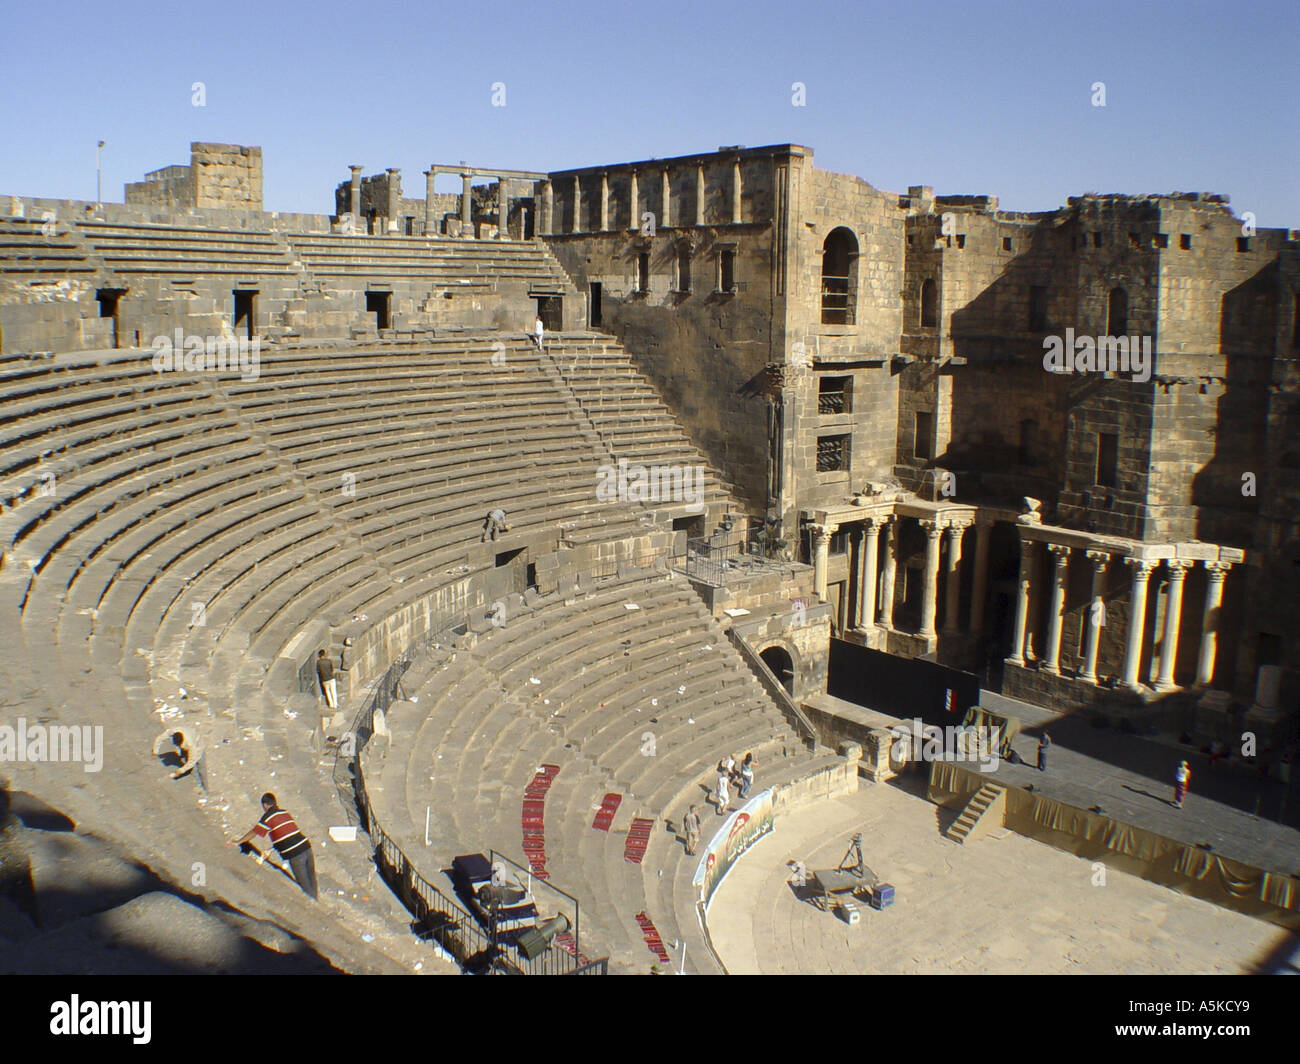 Roman theatre in Bosra - Stock Image